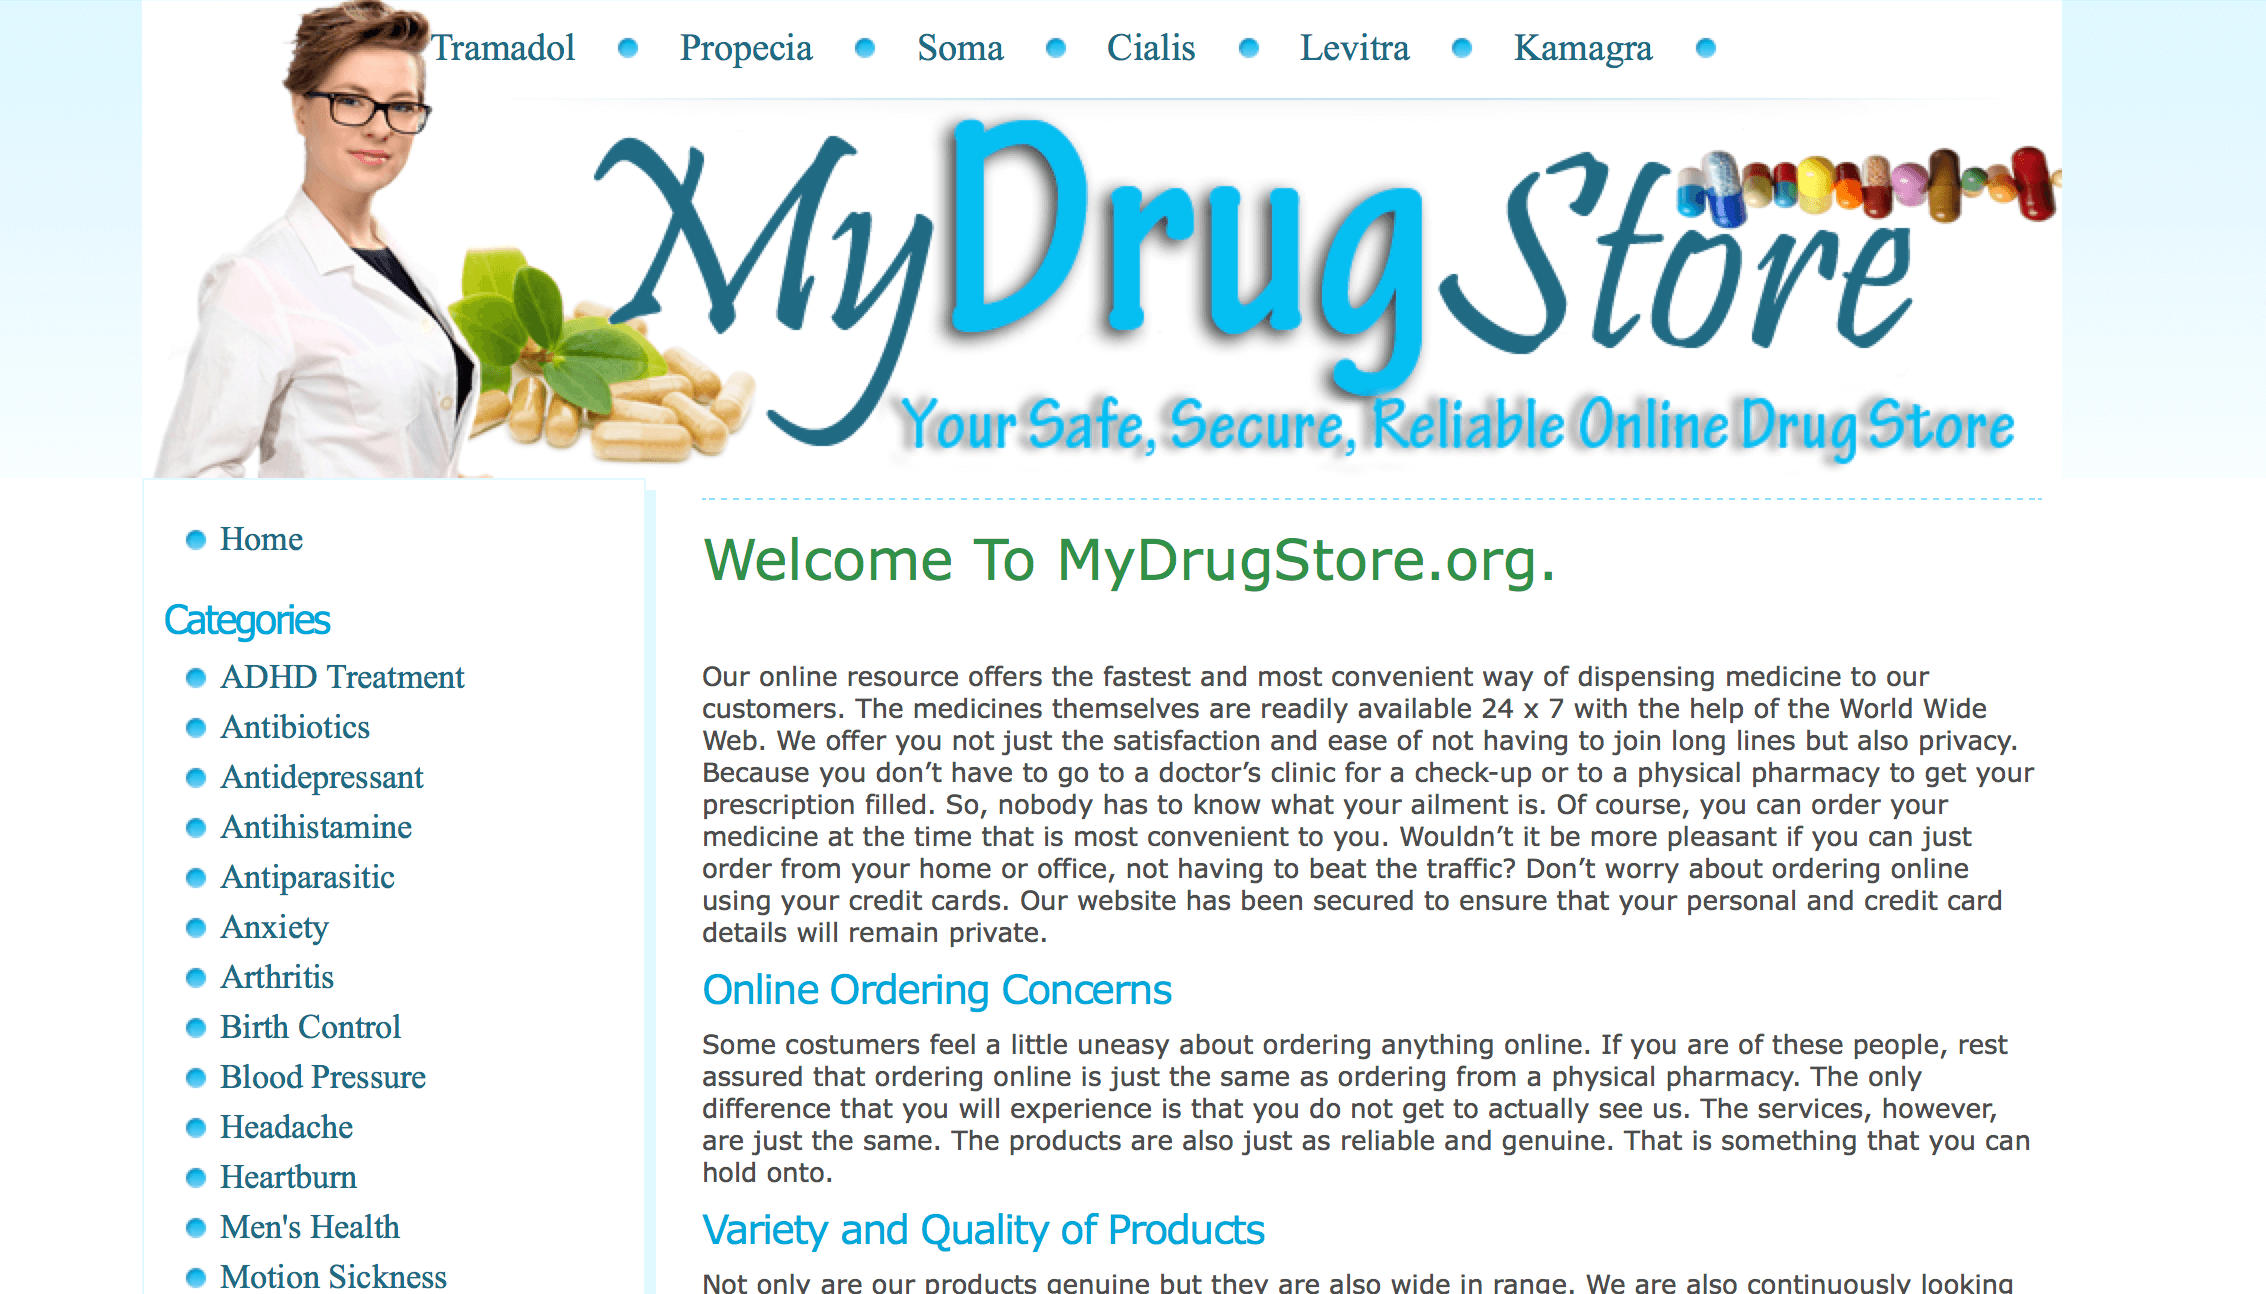 MyDrugstore.org Pharmacy Review